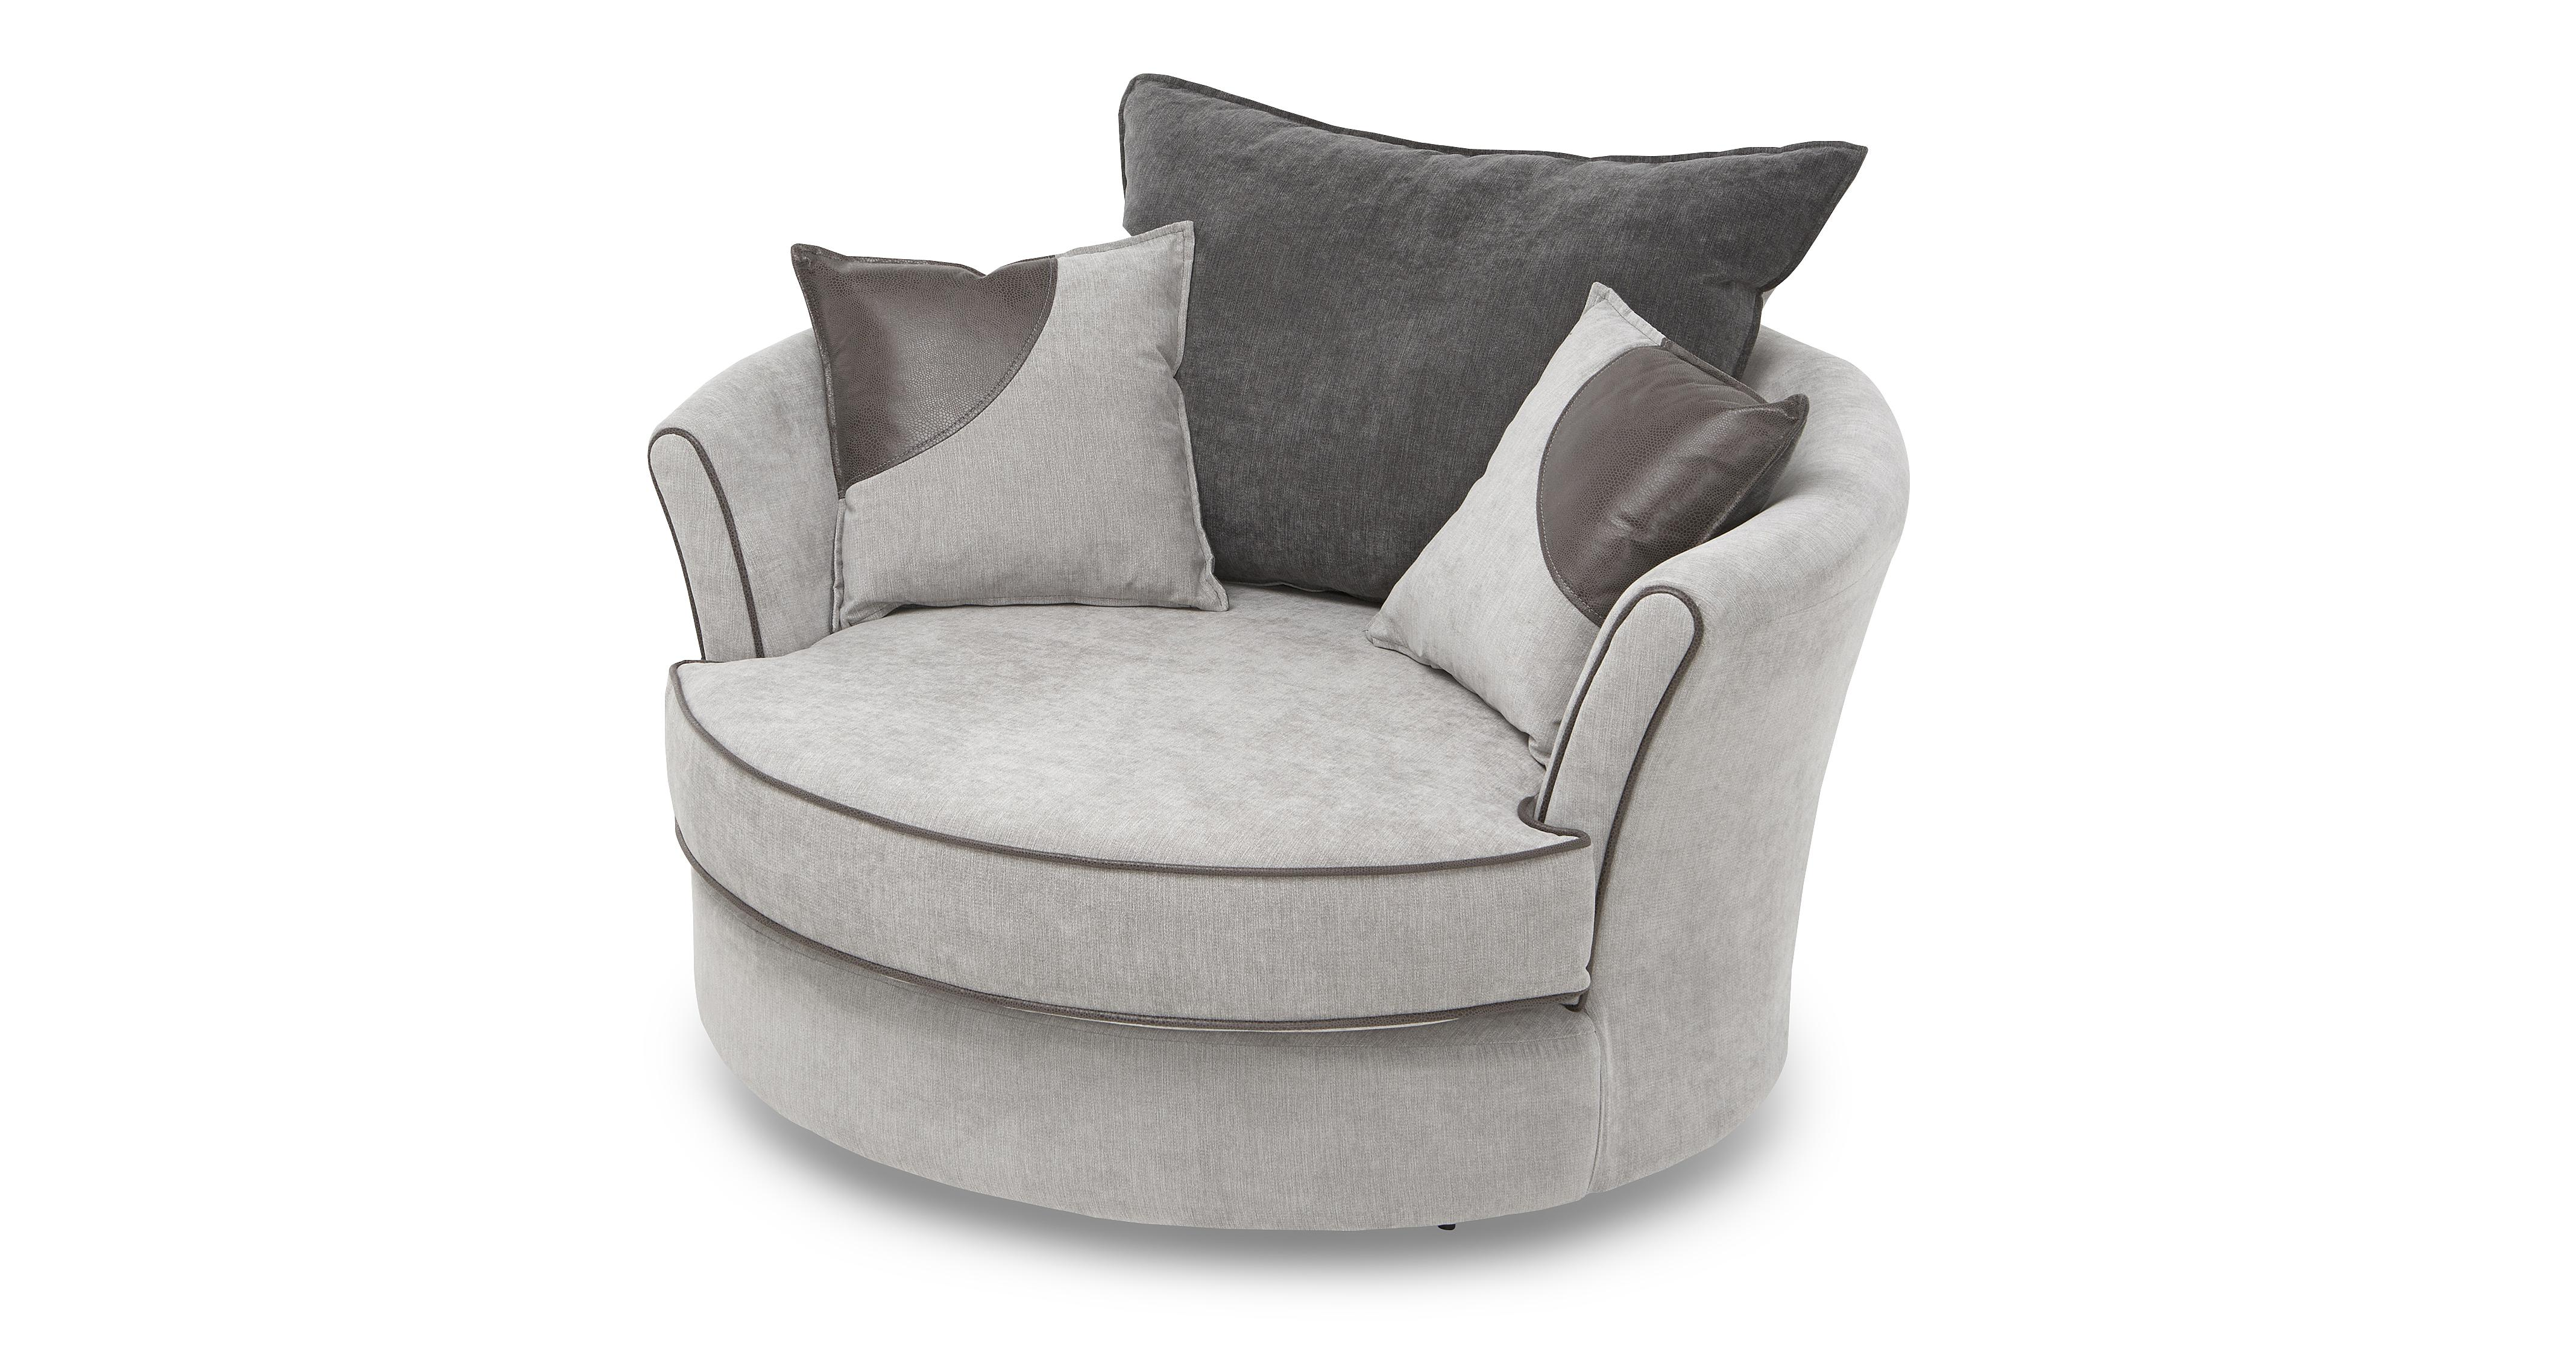 one and half seater sofa best quality sectional reviews dfs kynda set 2 bed swivel chair